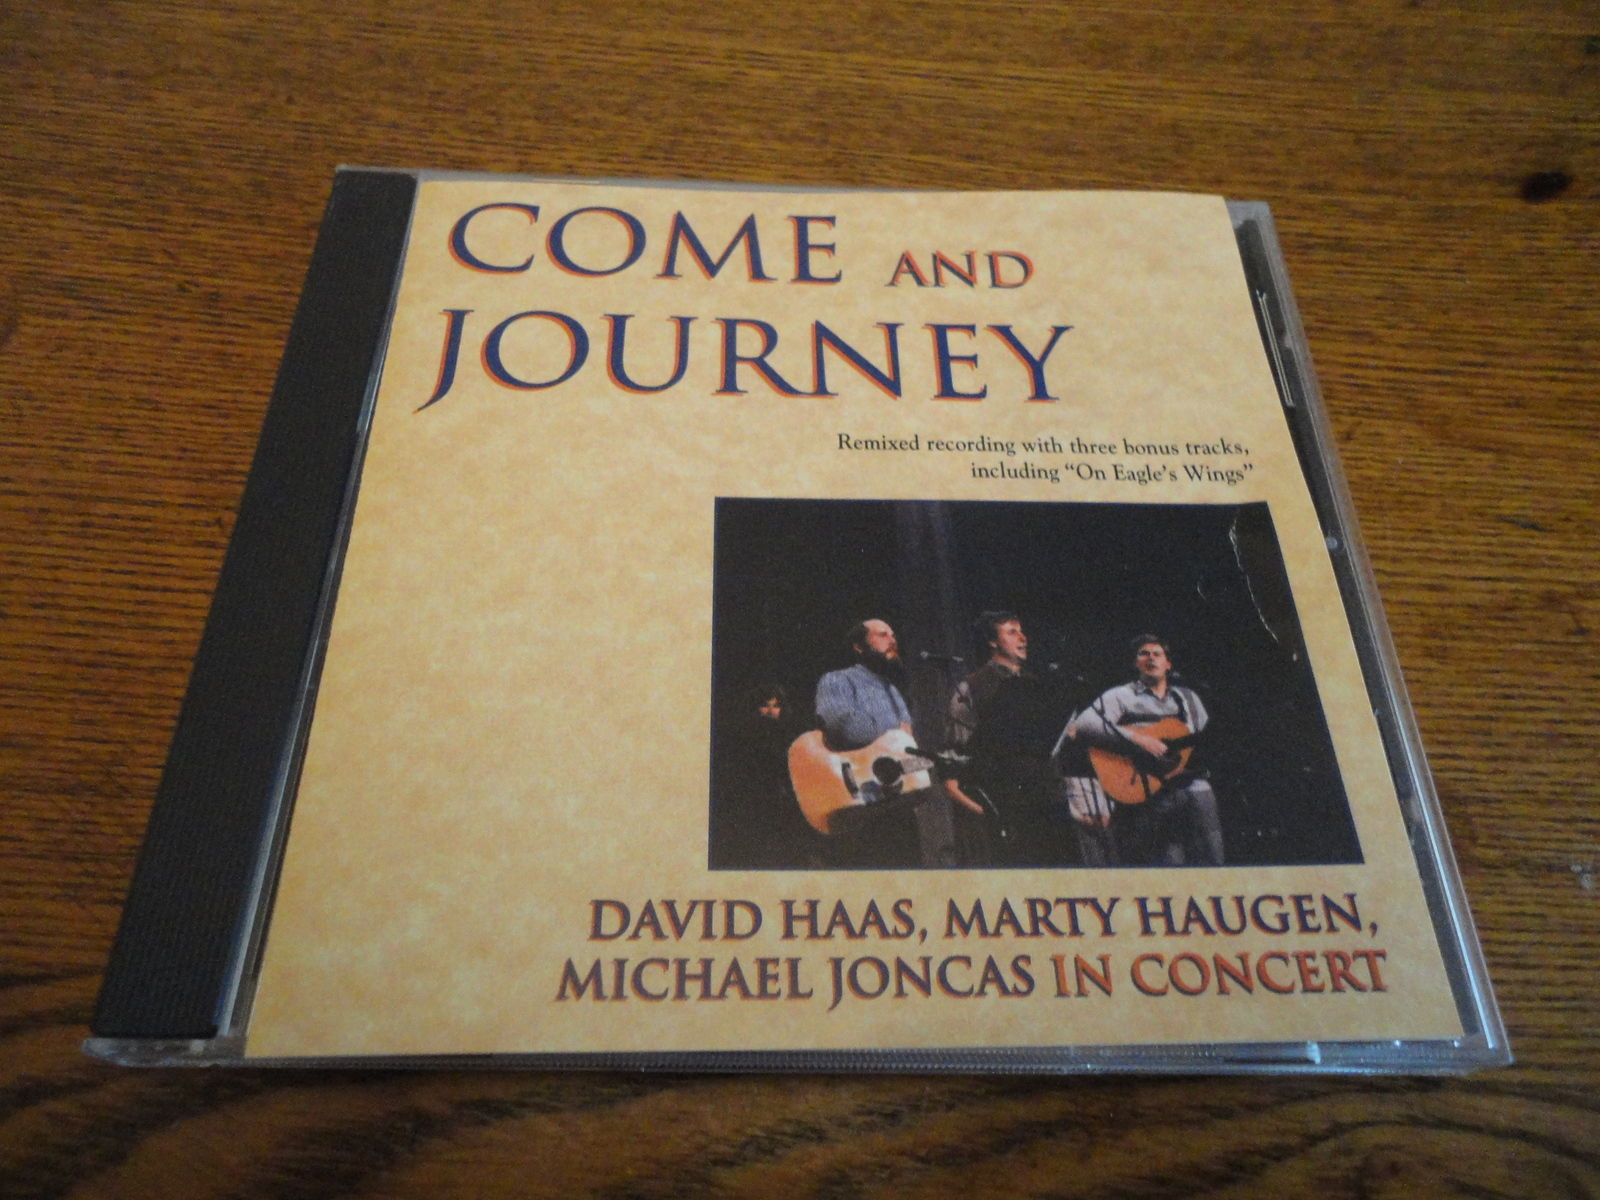 CD David Haas/Marty Haugen/Michael Joncas 'Come and Journey' live Christian 1995